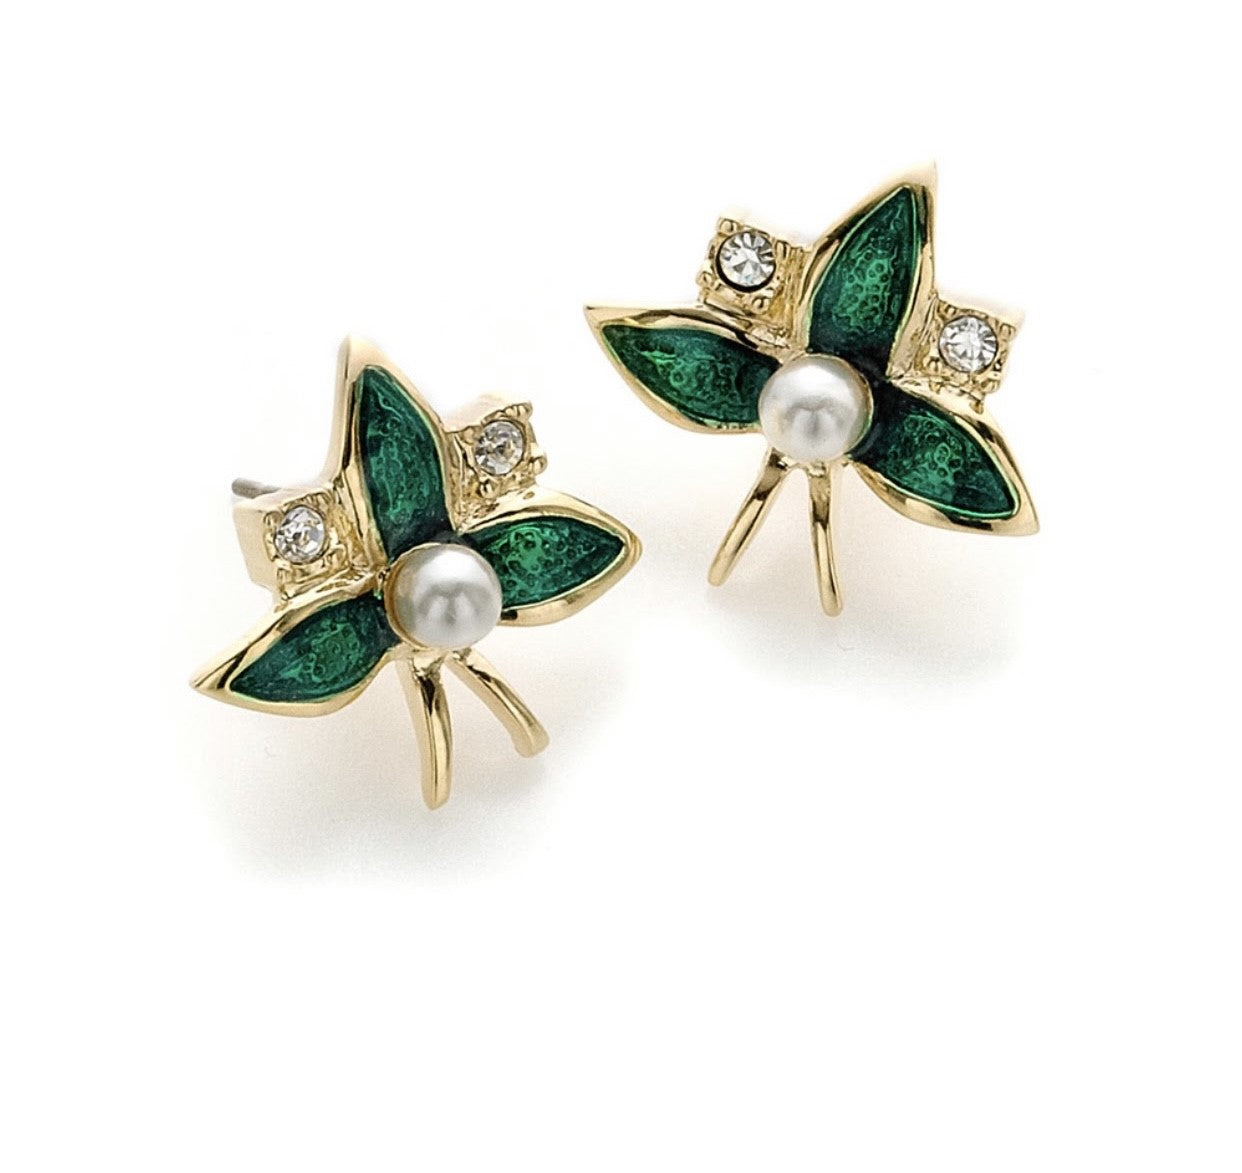 Emerald Fabergé Flower Earrings